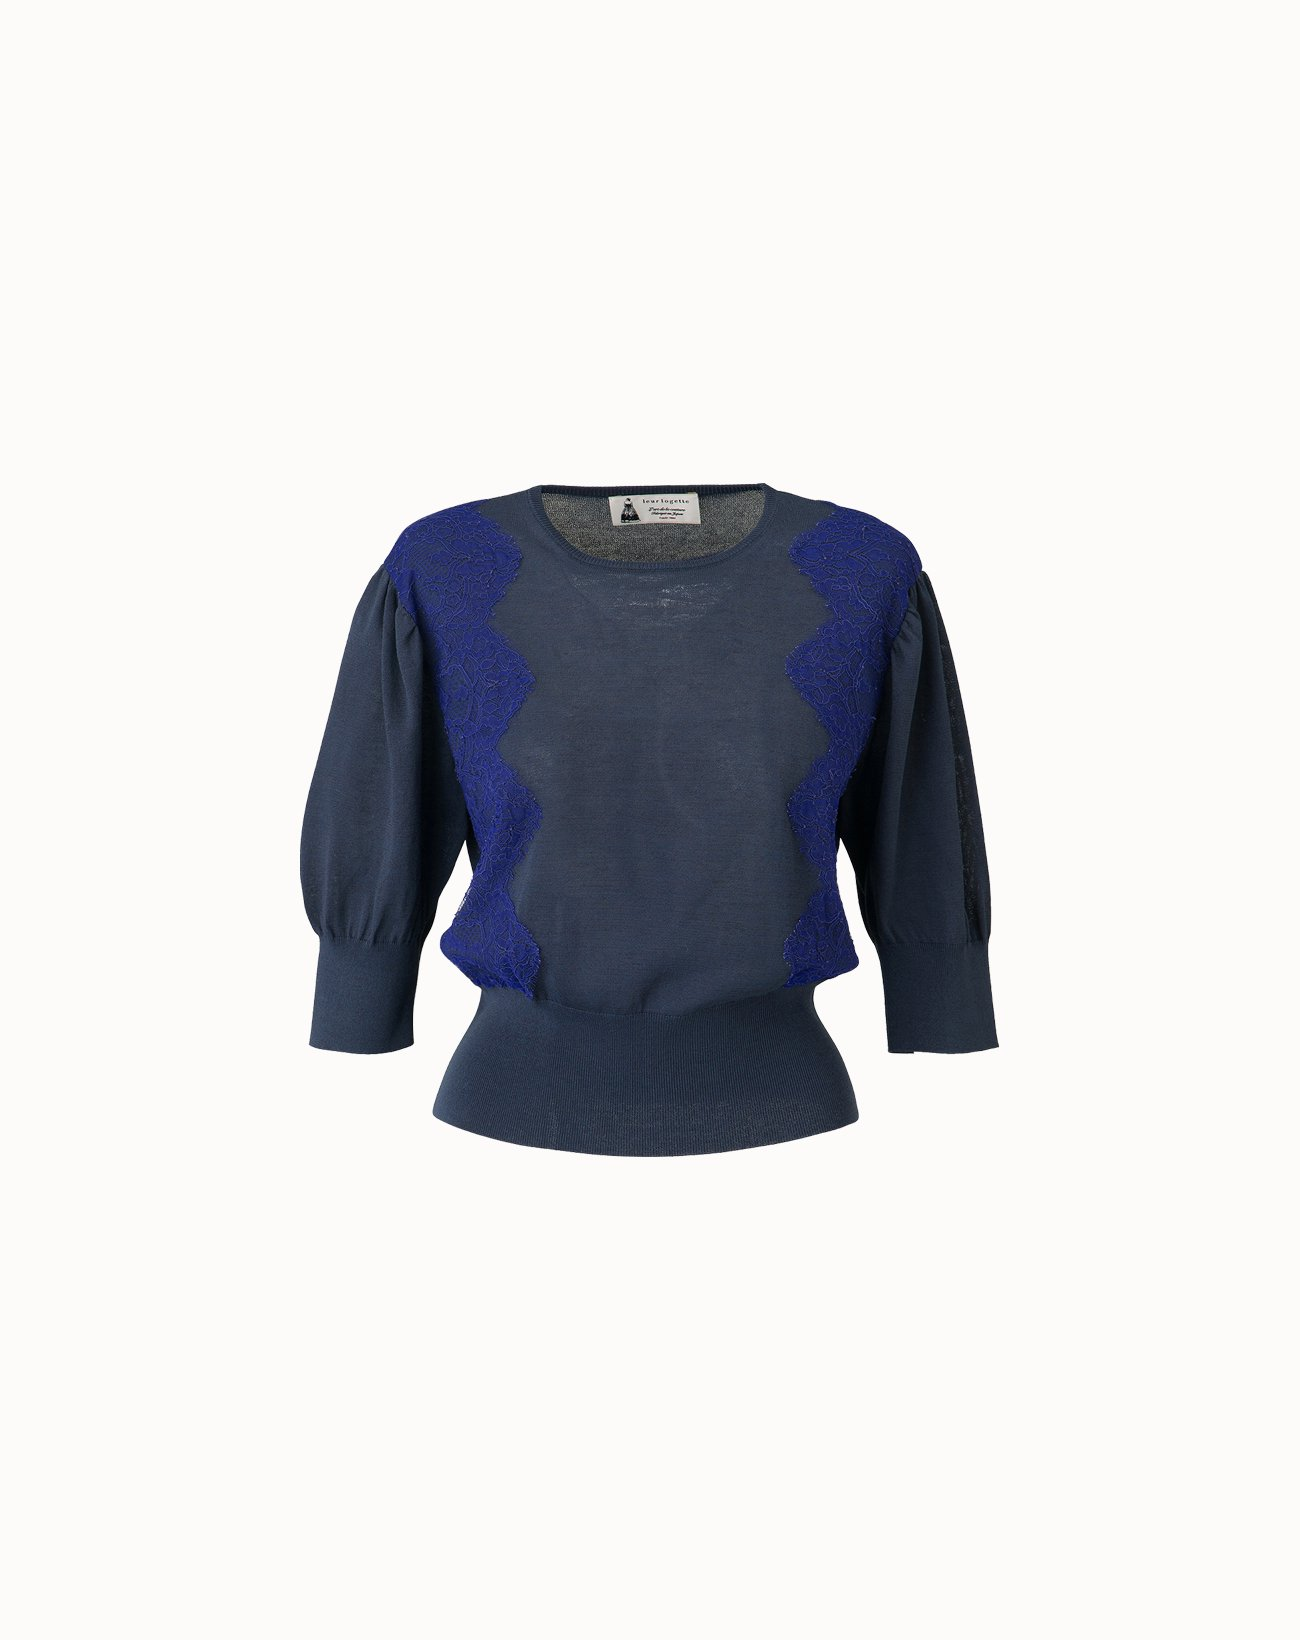 Cotton Silk Top - Navy